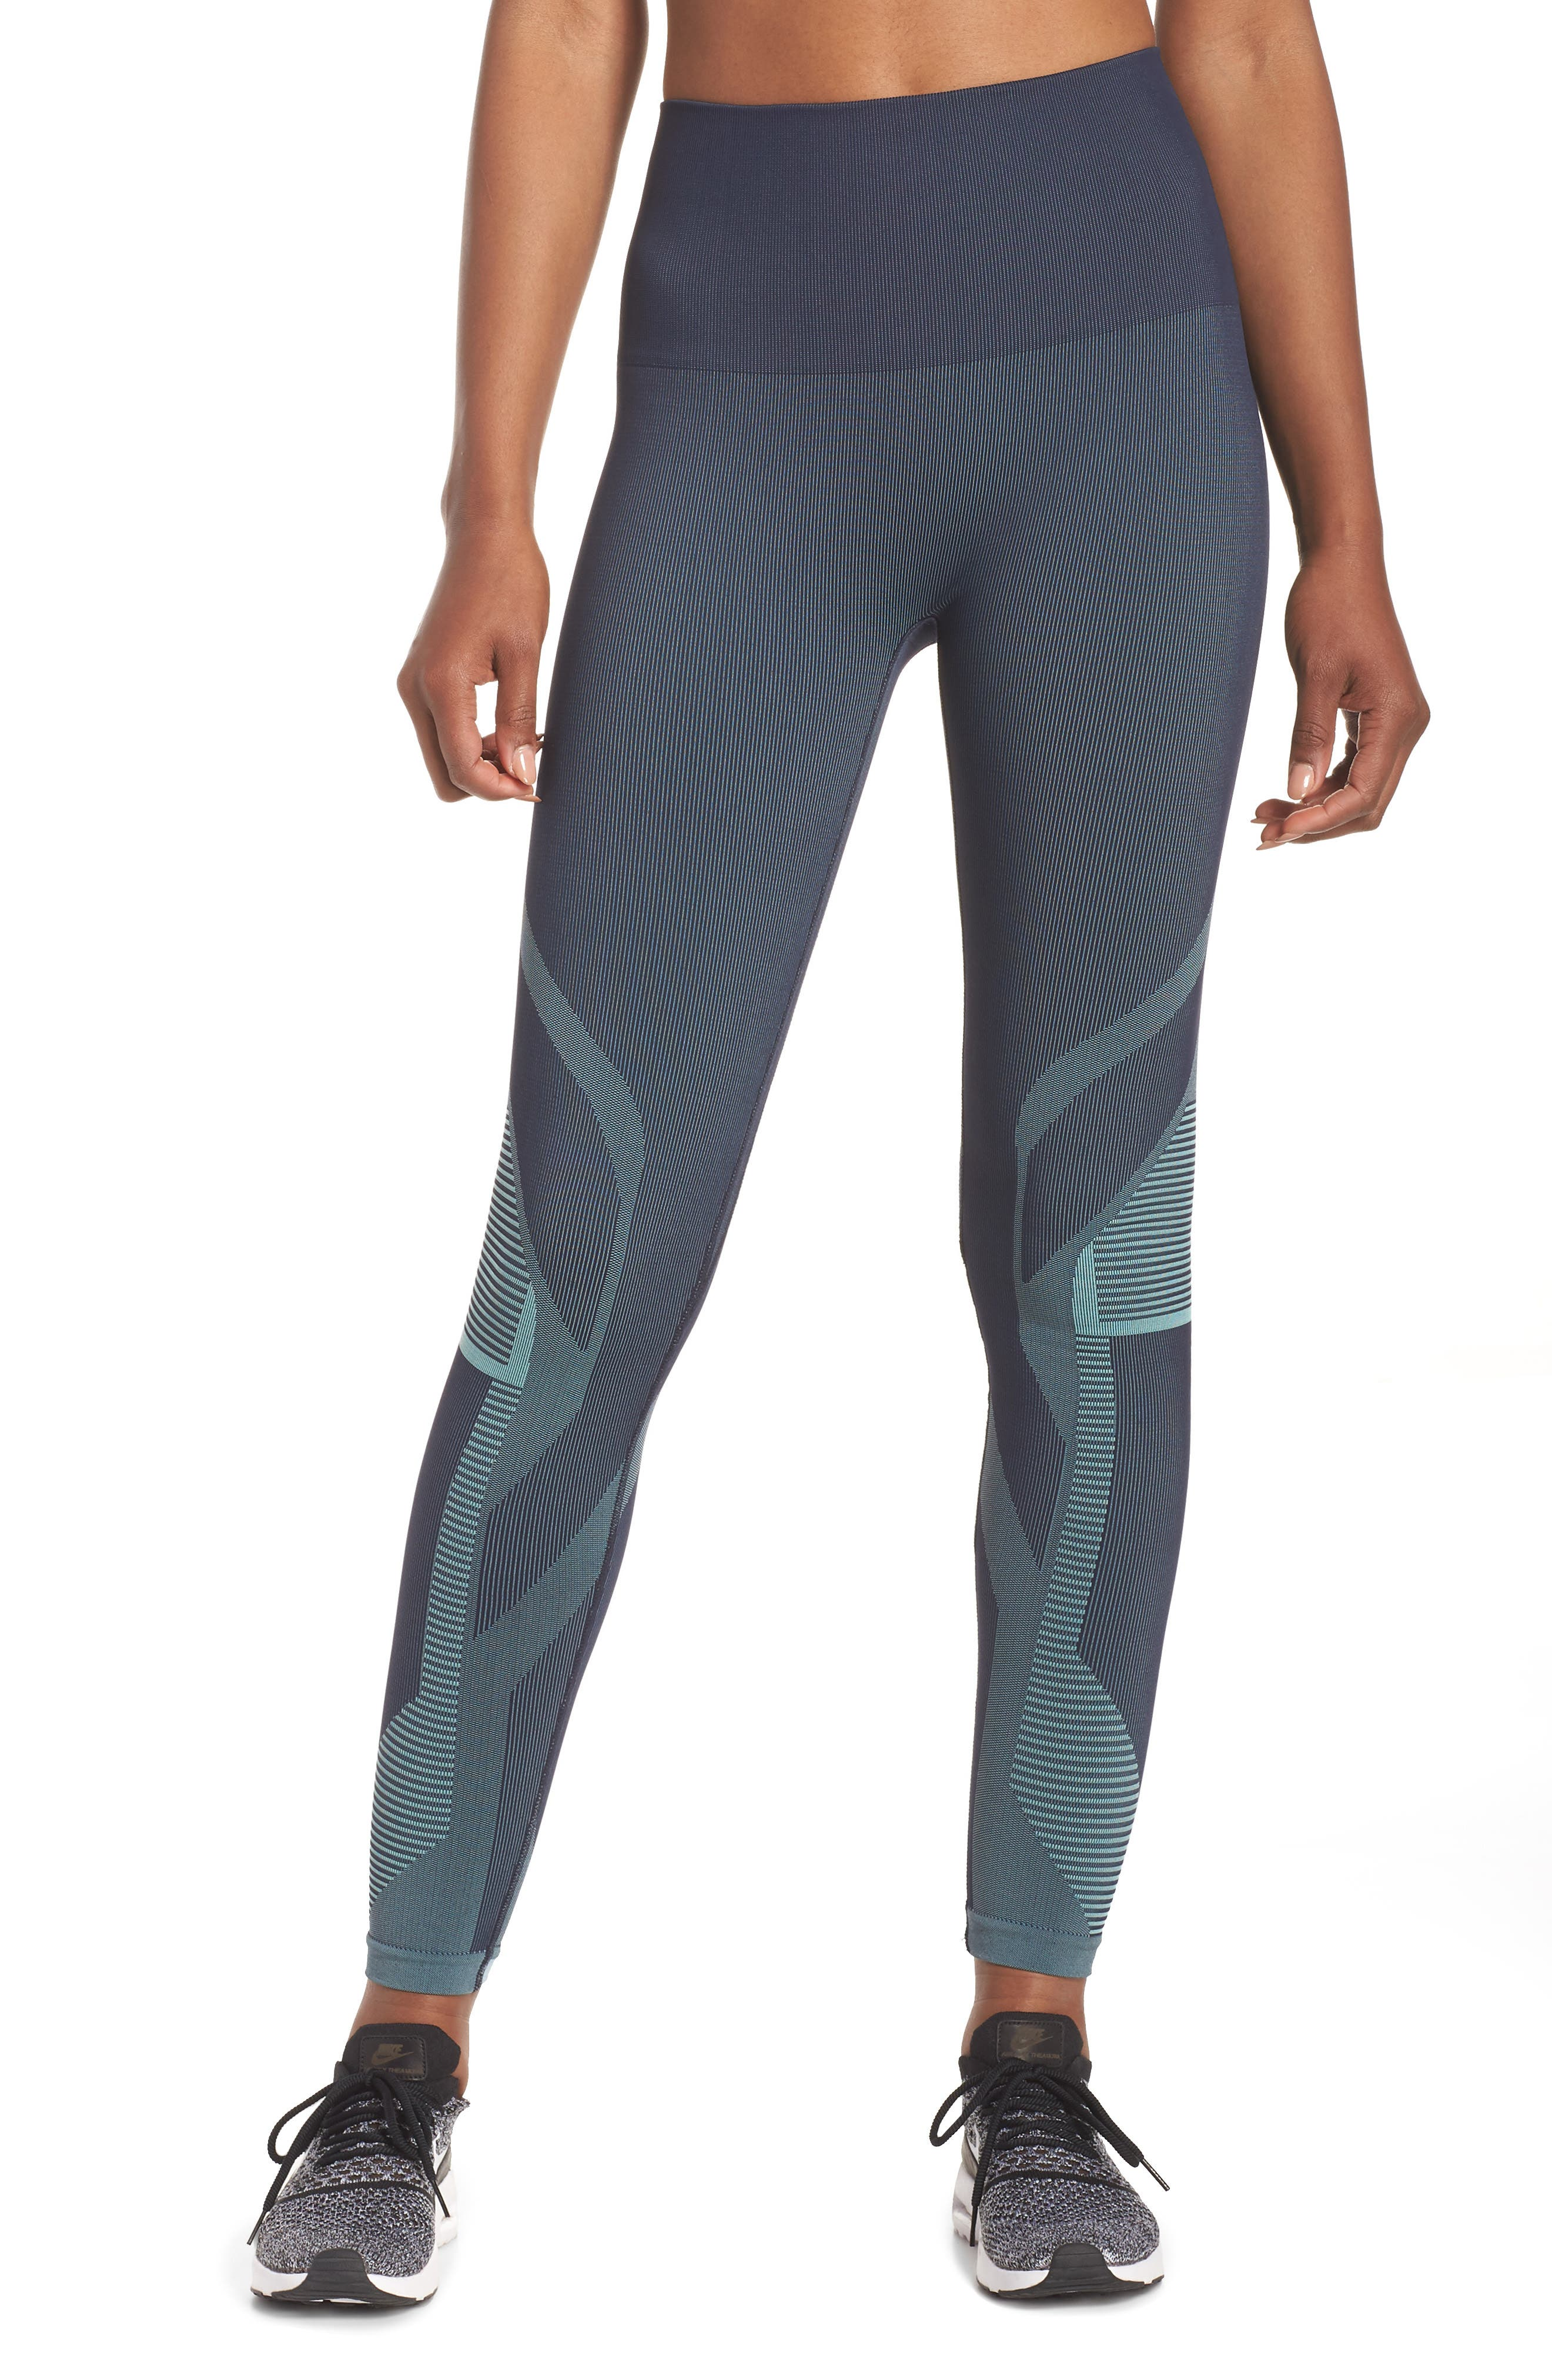 Spectrum High Waist Seamless Leggings,                         Main,                         color, Deep Sea Navy